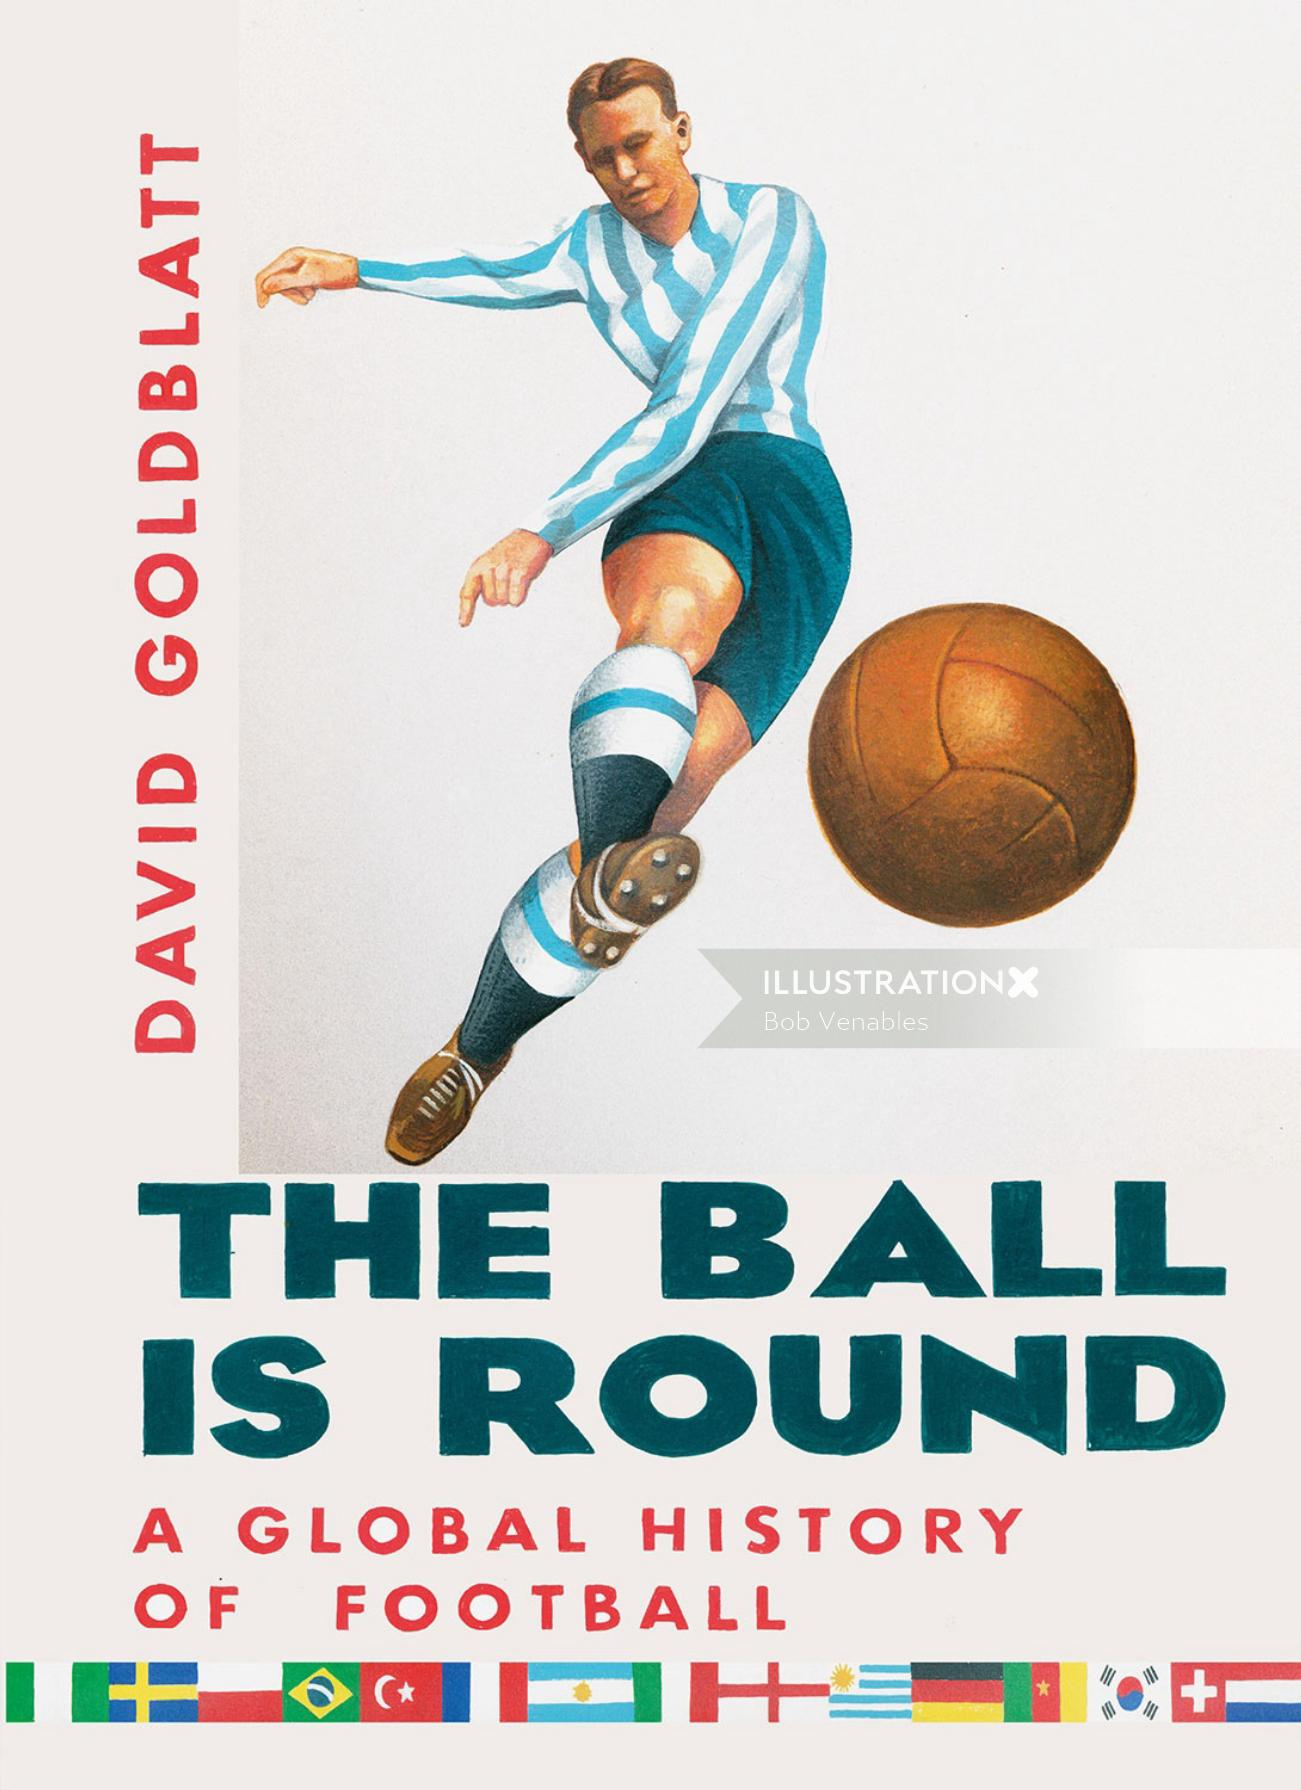 The ball is round book cover illustration